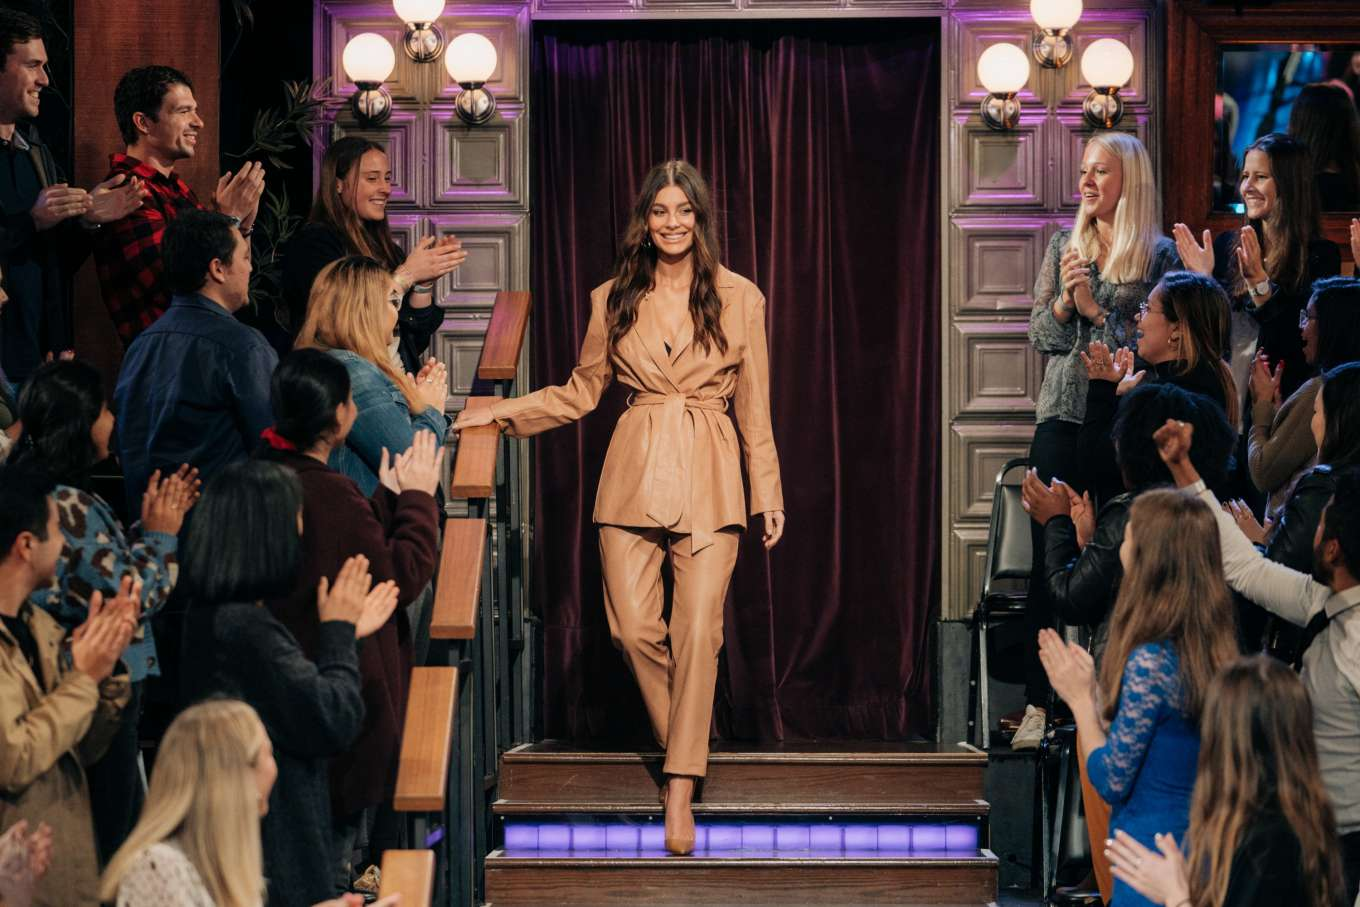 Camila Morrone - On 'The Late Late Show With James Corden' in LA